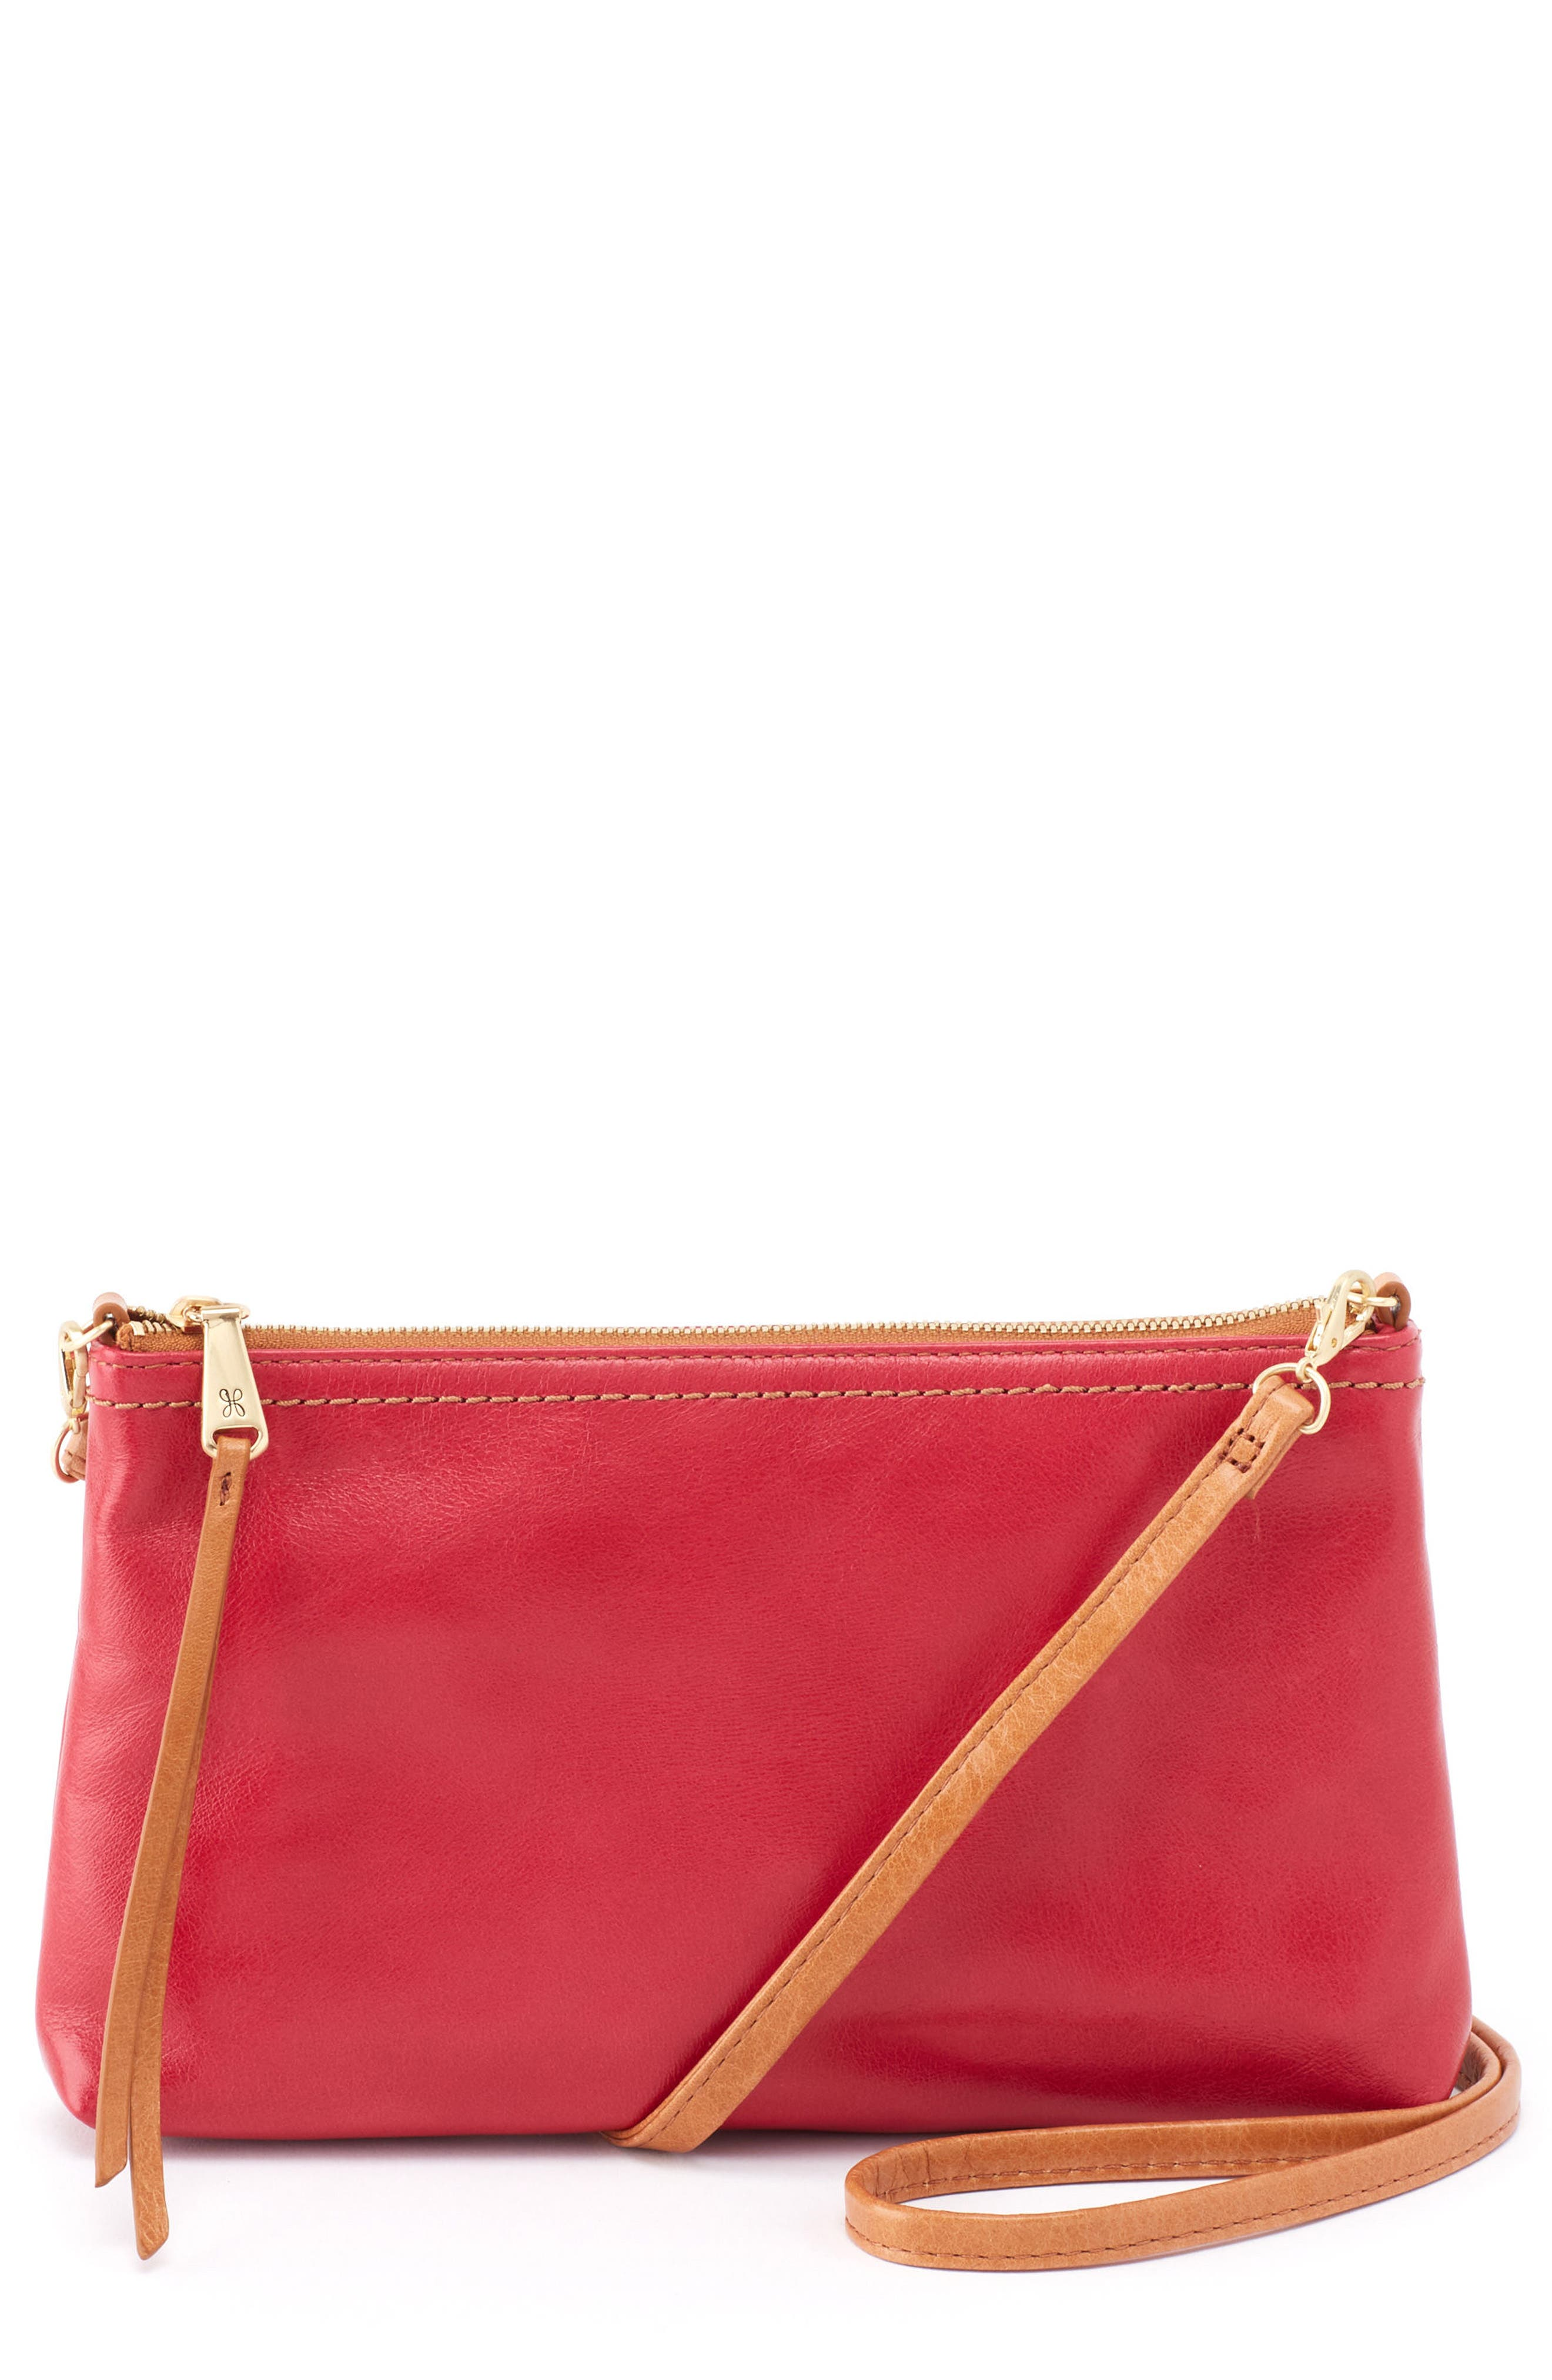 'Darcy' Leather Crossbody Bag,                             Main thumbnail 7, color,